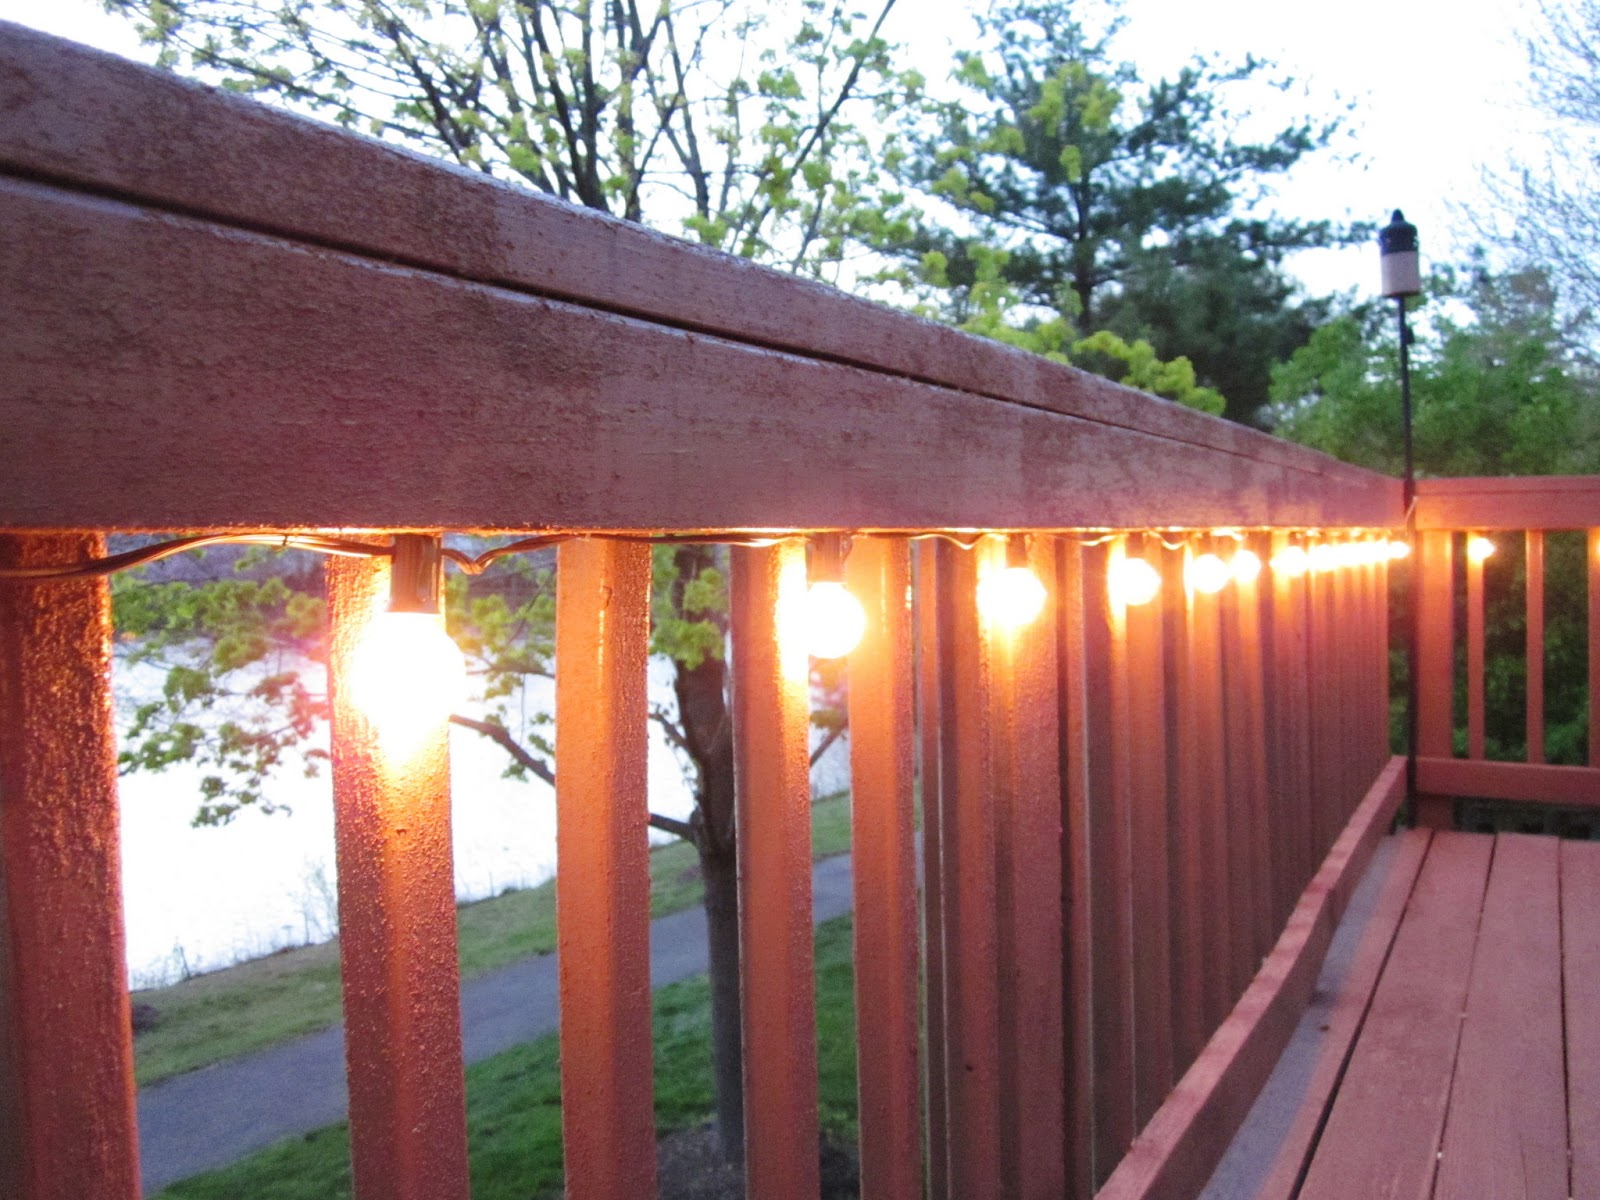 Best String Lights For Porch : BonnieProjects: Lighting the Deck